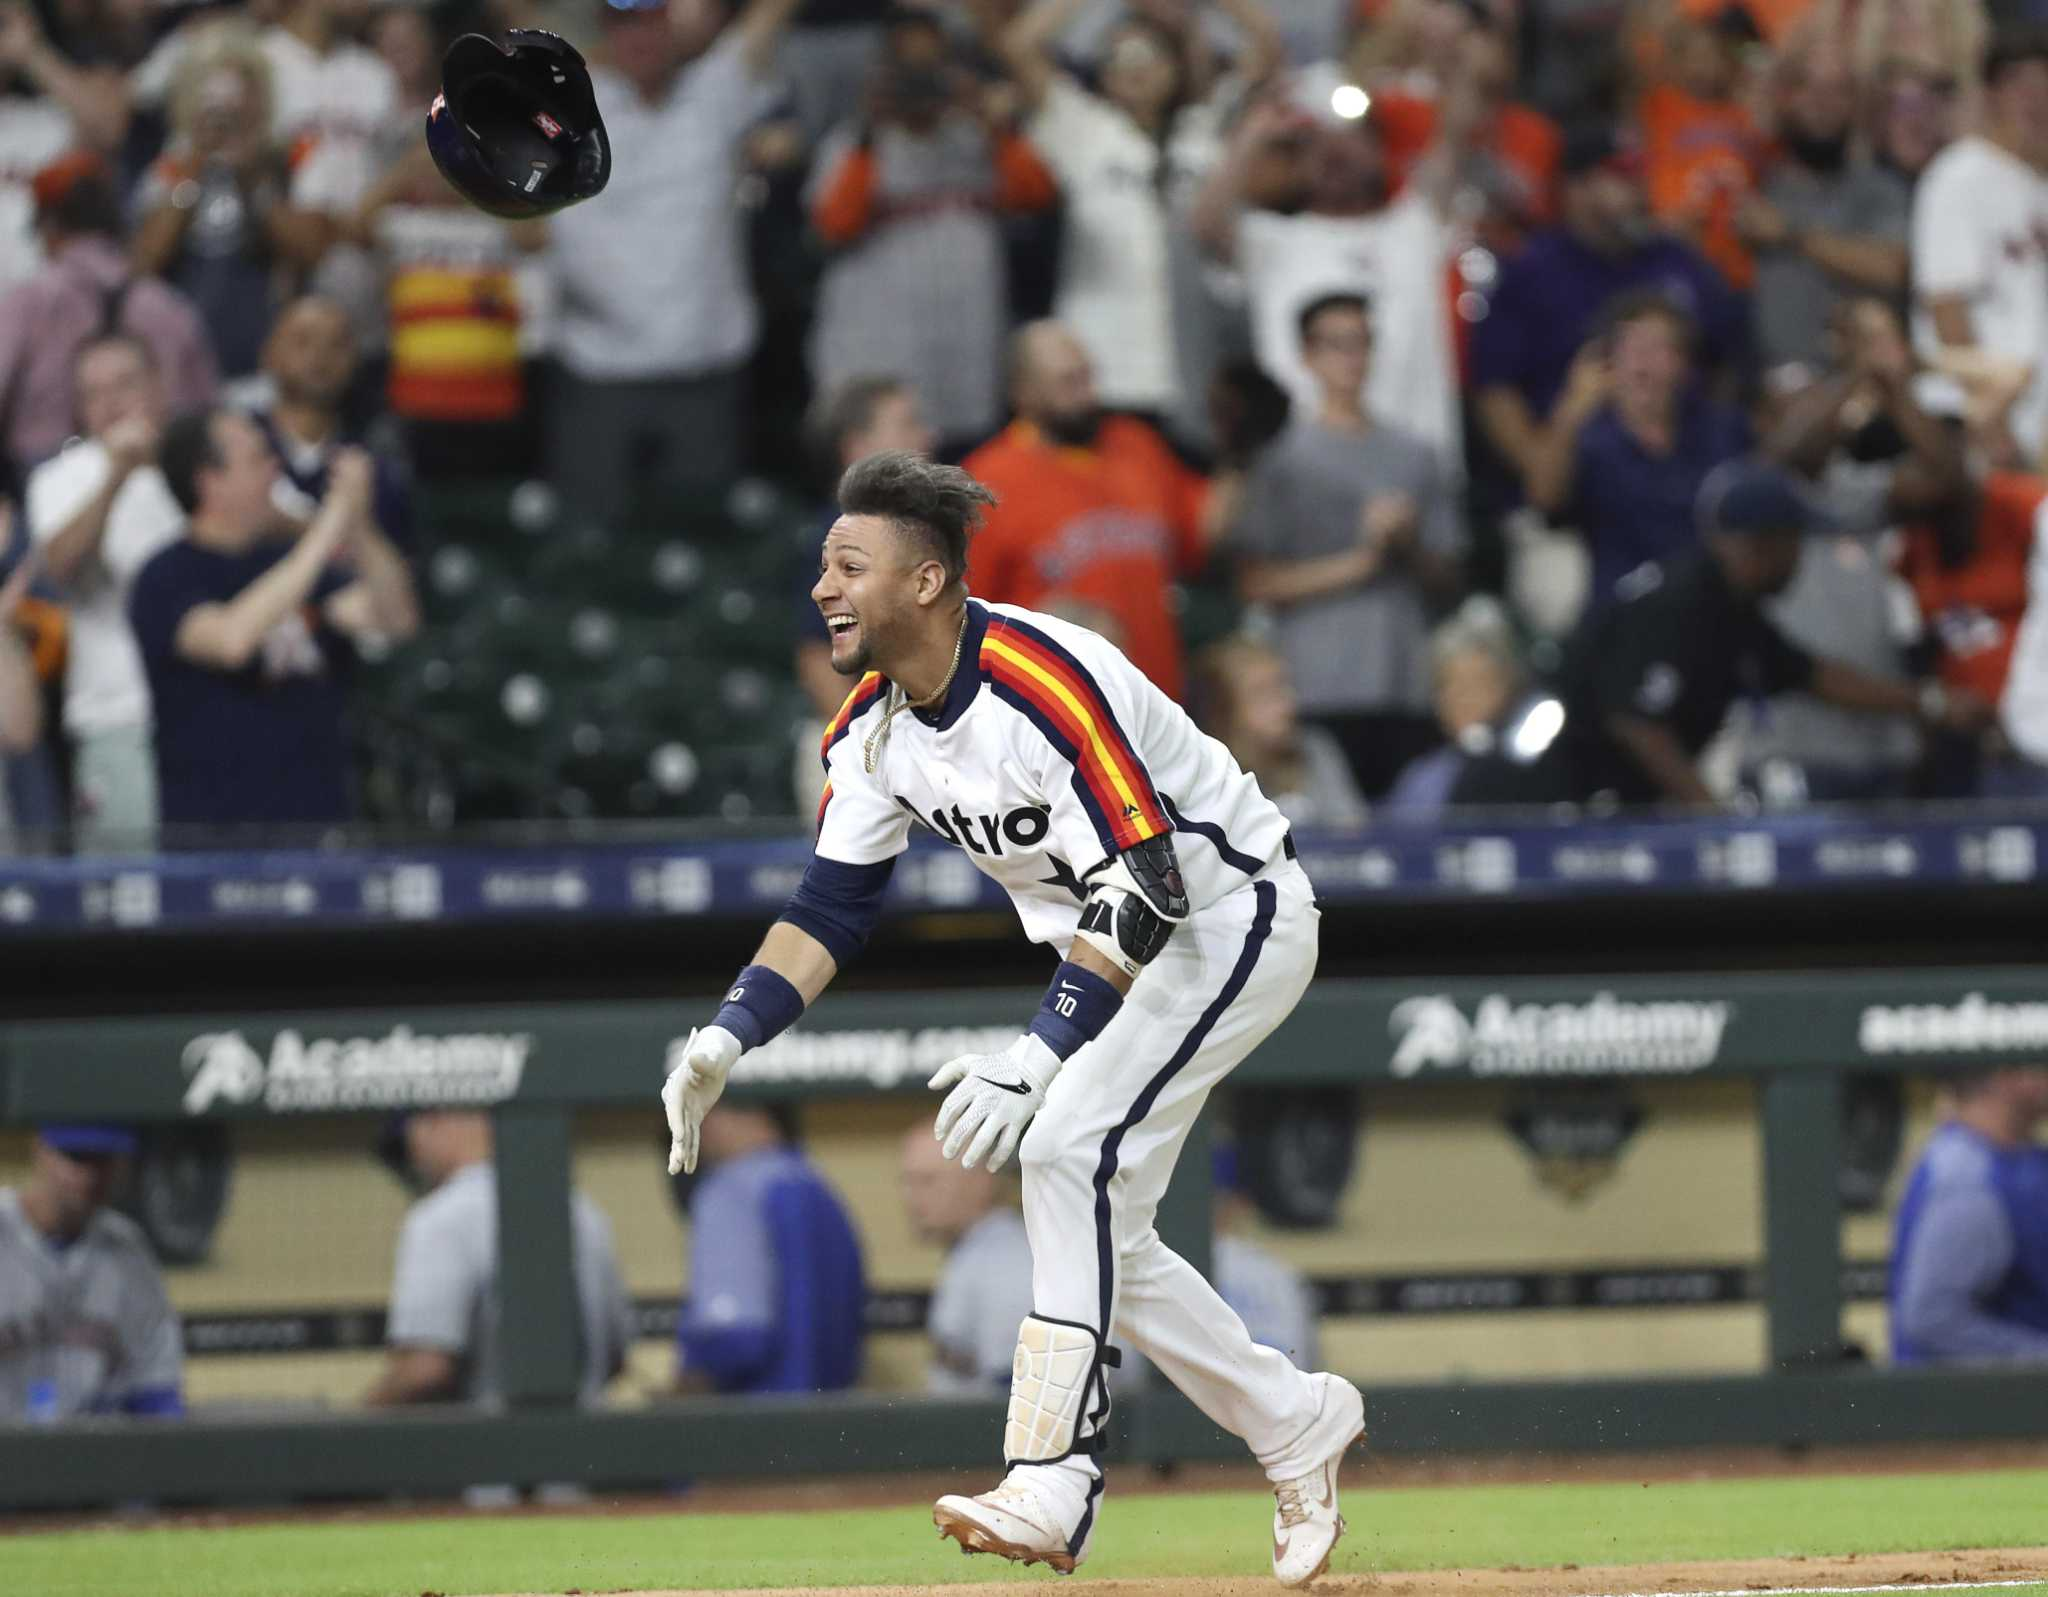 Yuli Gurriel's homer in 10th lifts Astros past Mariners